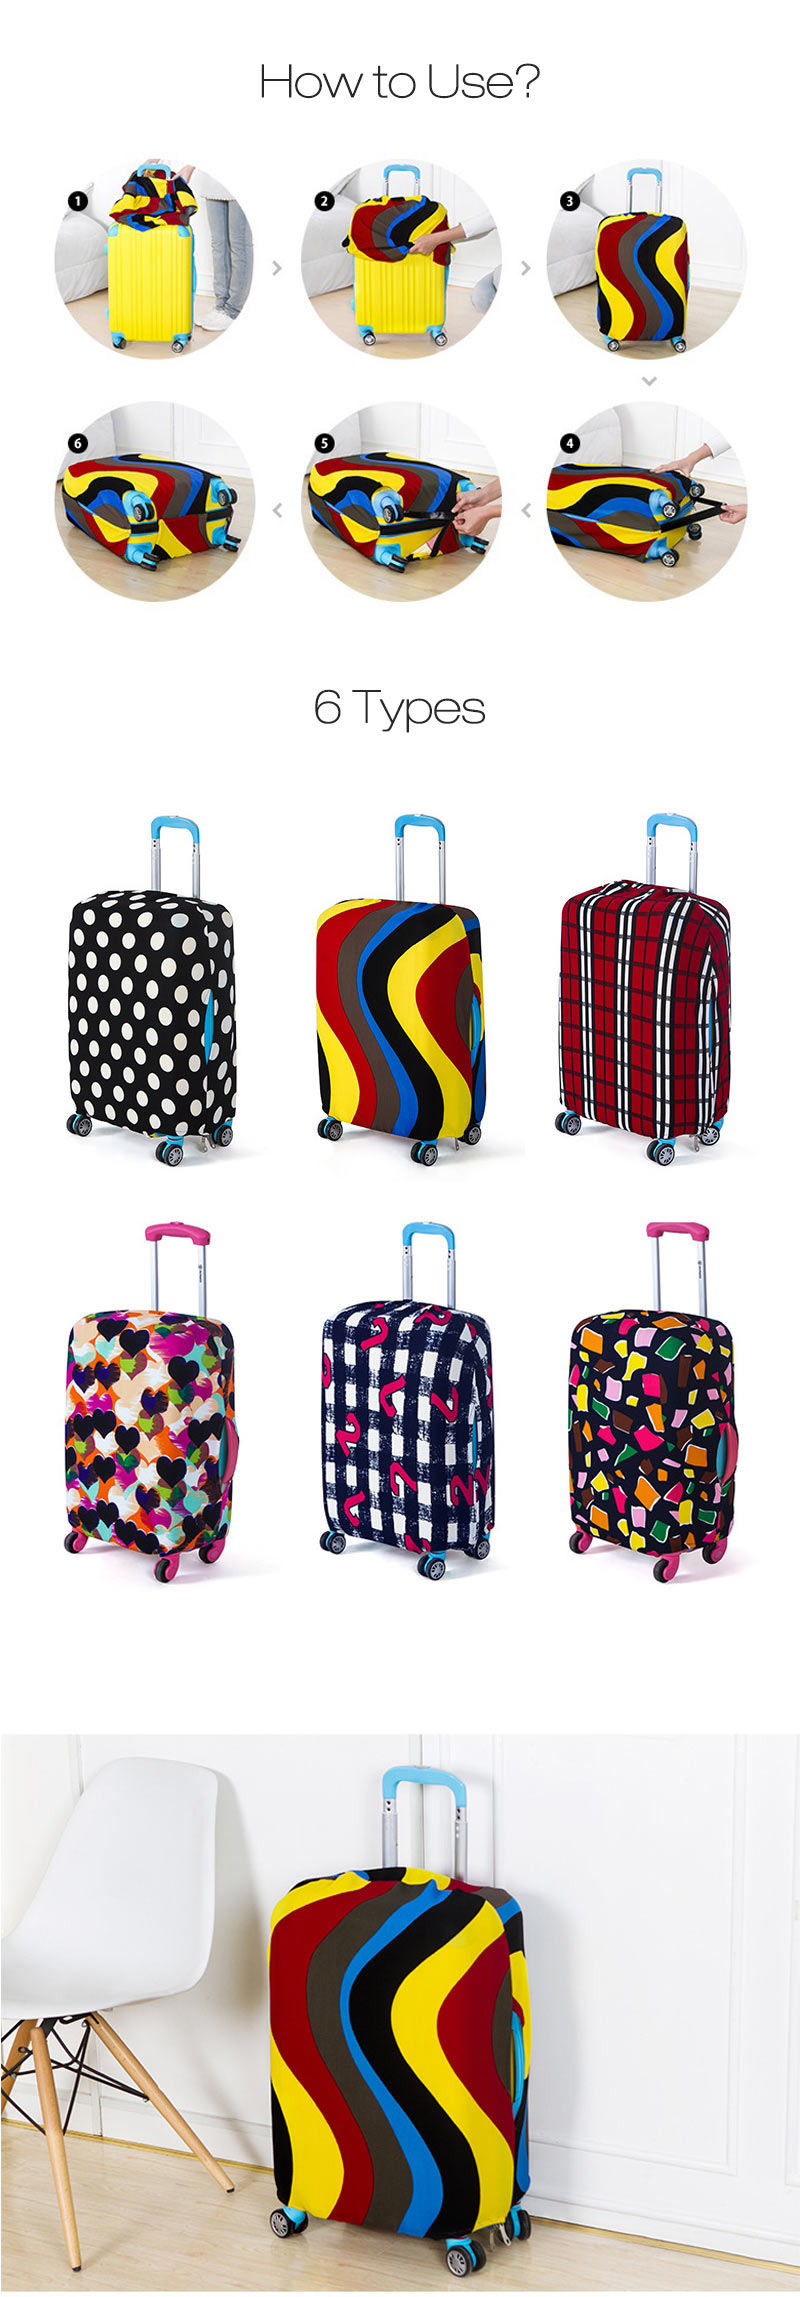 Honana HN-0802 Washable Luggage Cover Colorful Elastic Suitcase Cover Durable Suitcase Protector